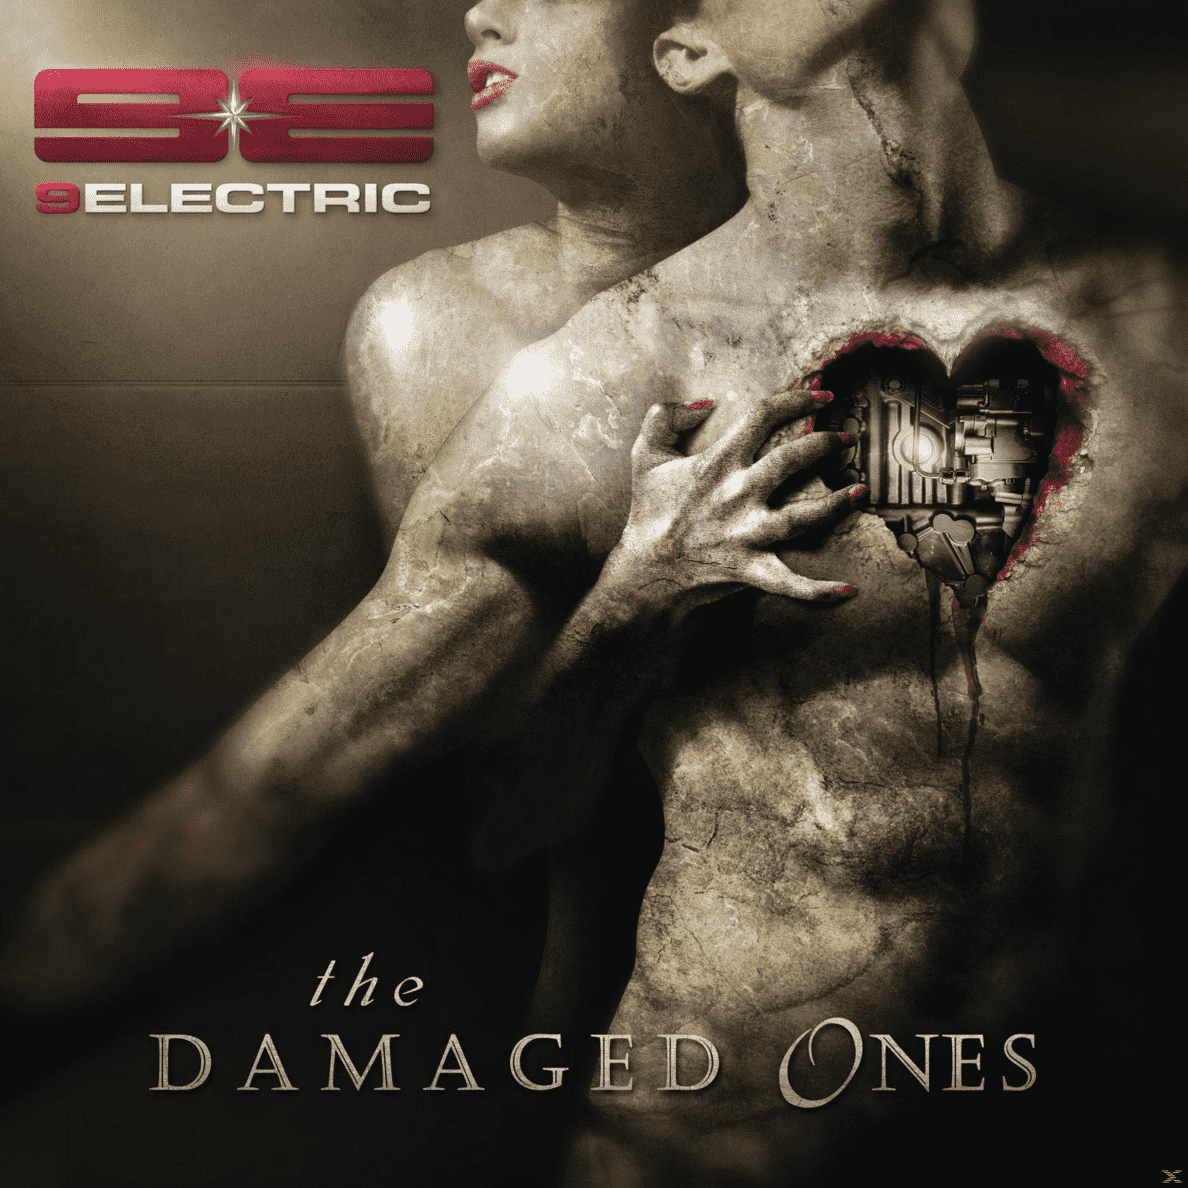 The Damaged Ones 9electric auf CD